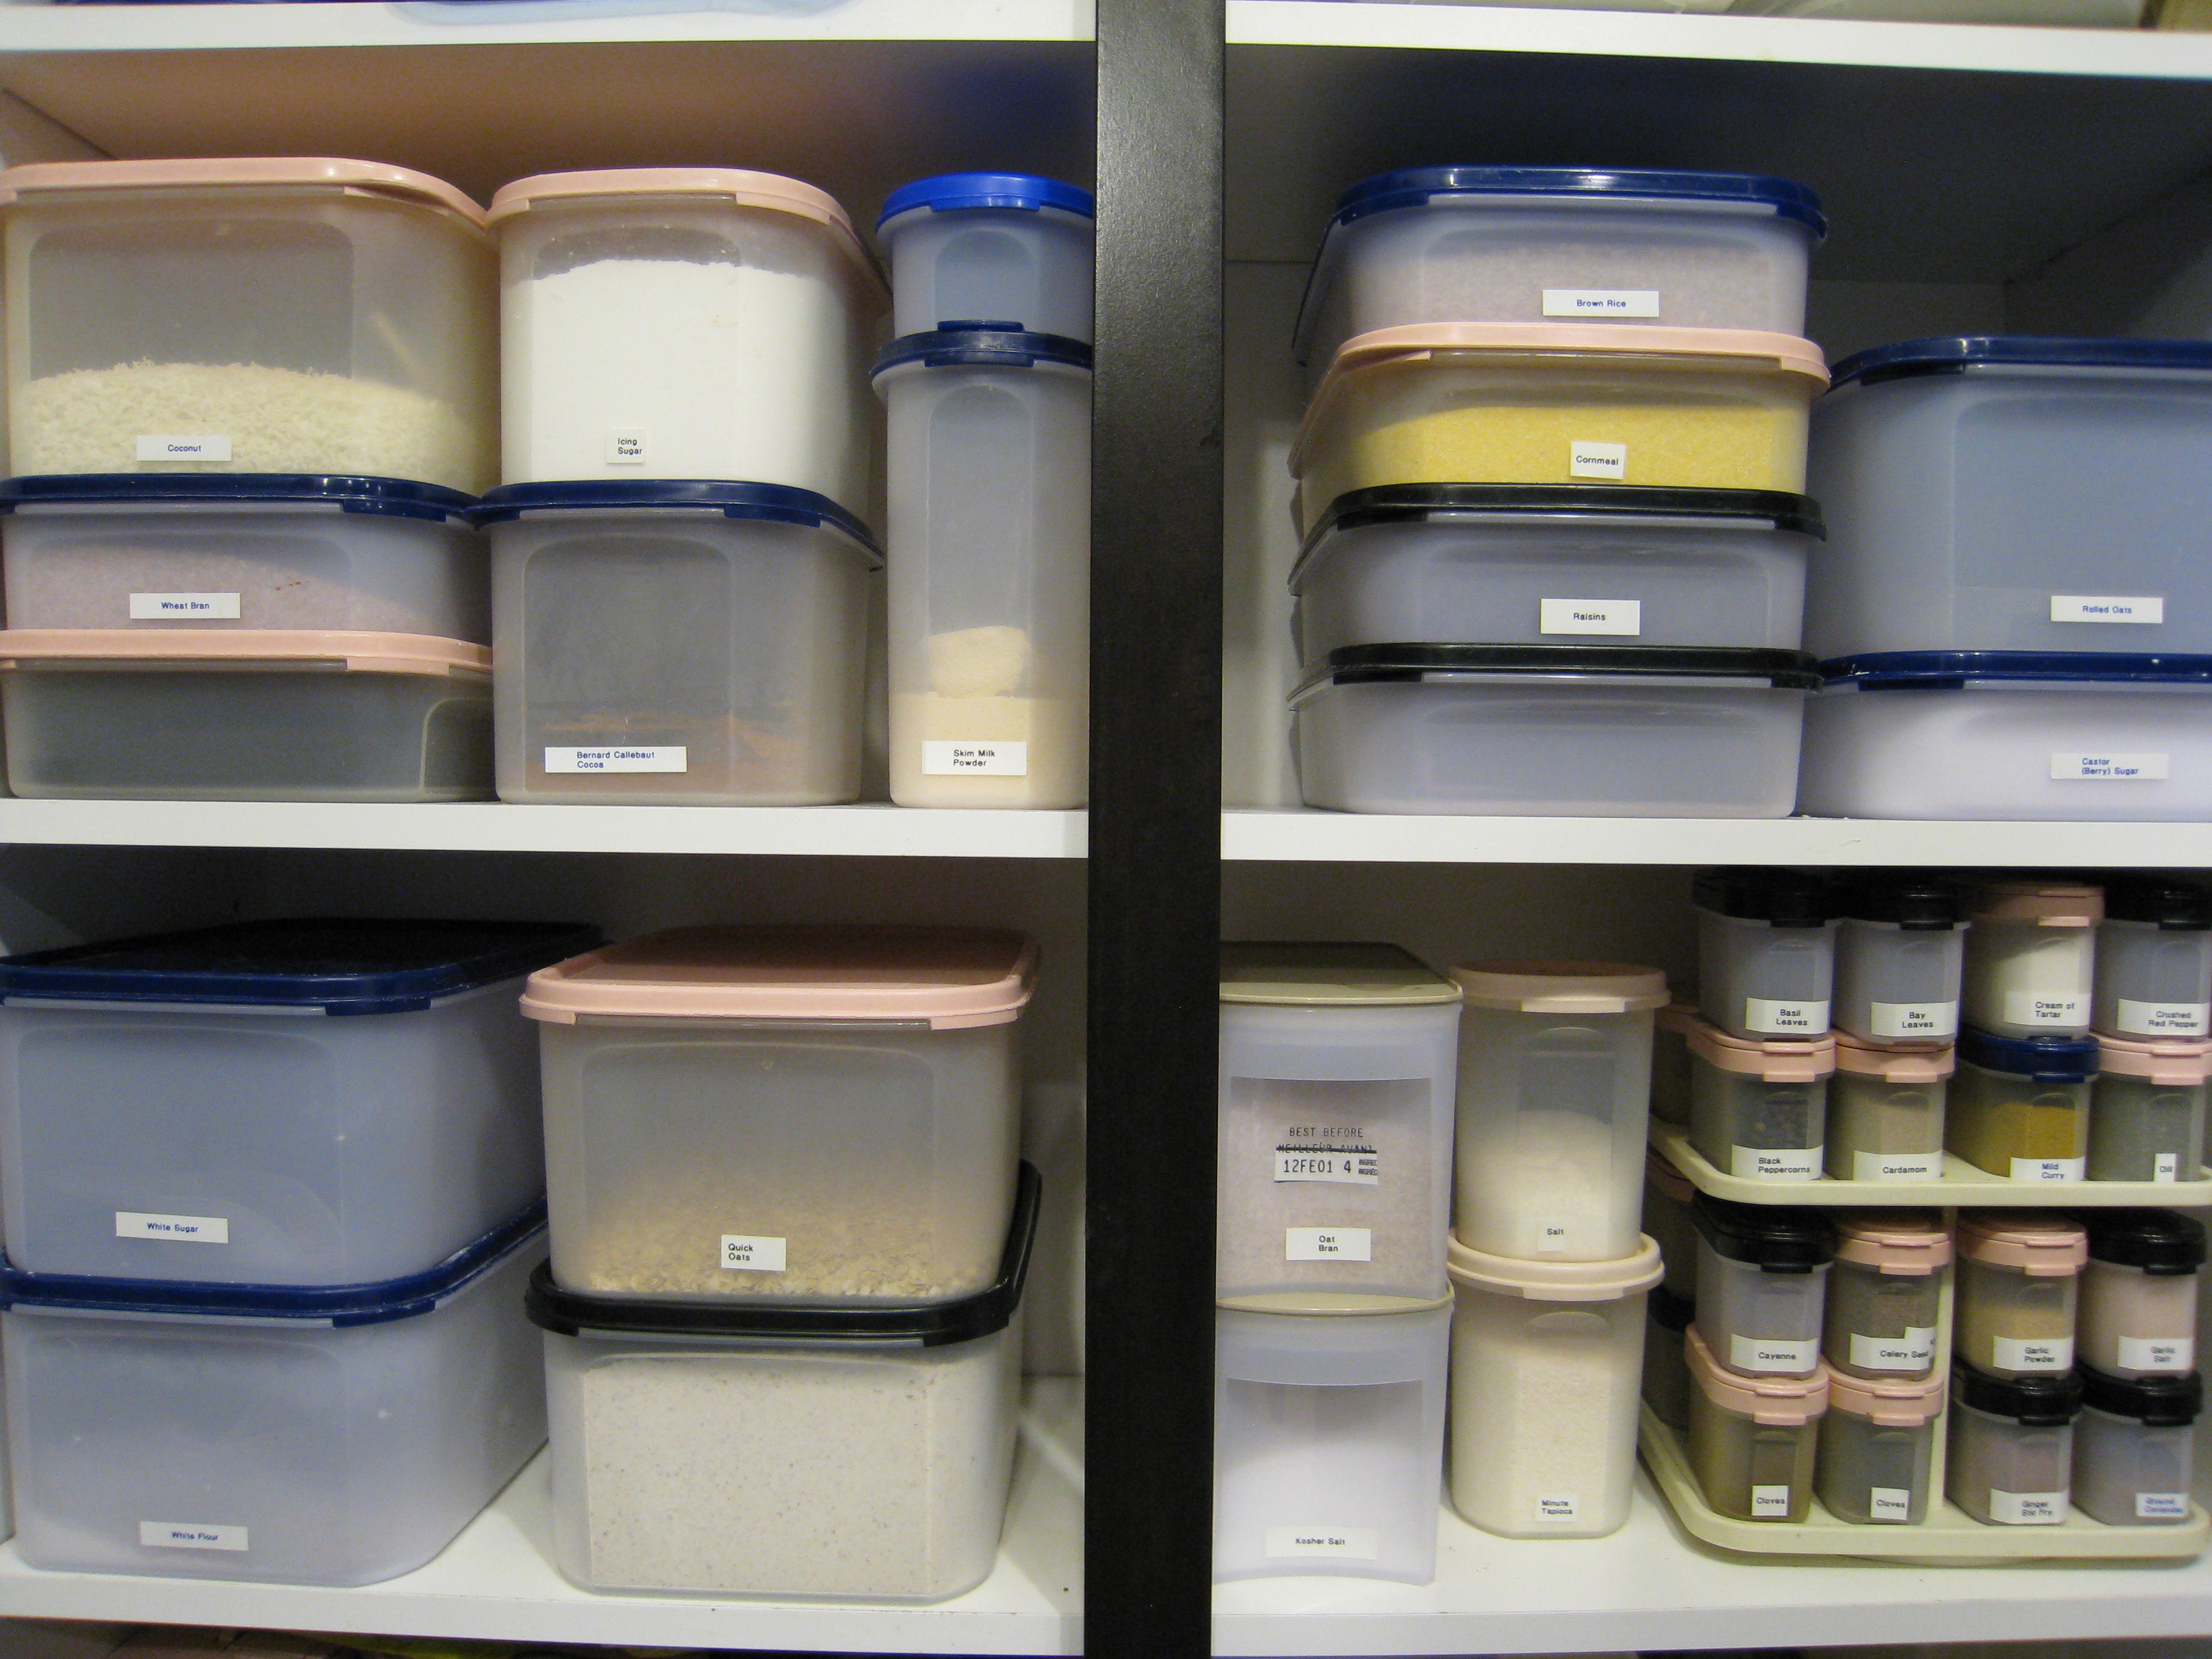 A perfectly organized closet full of tupperware